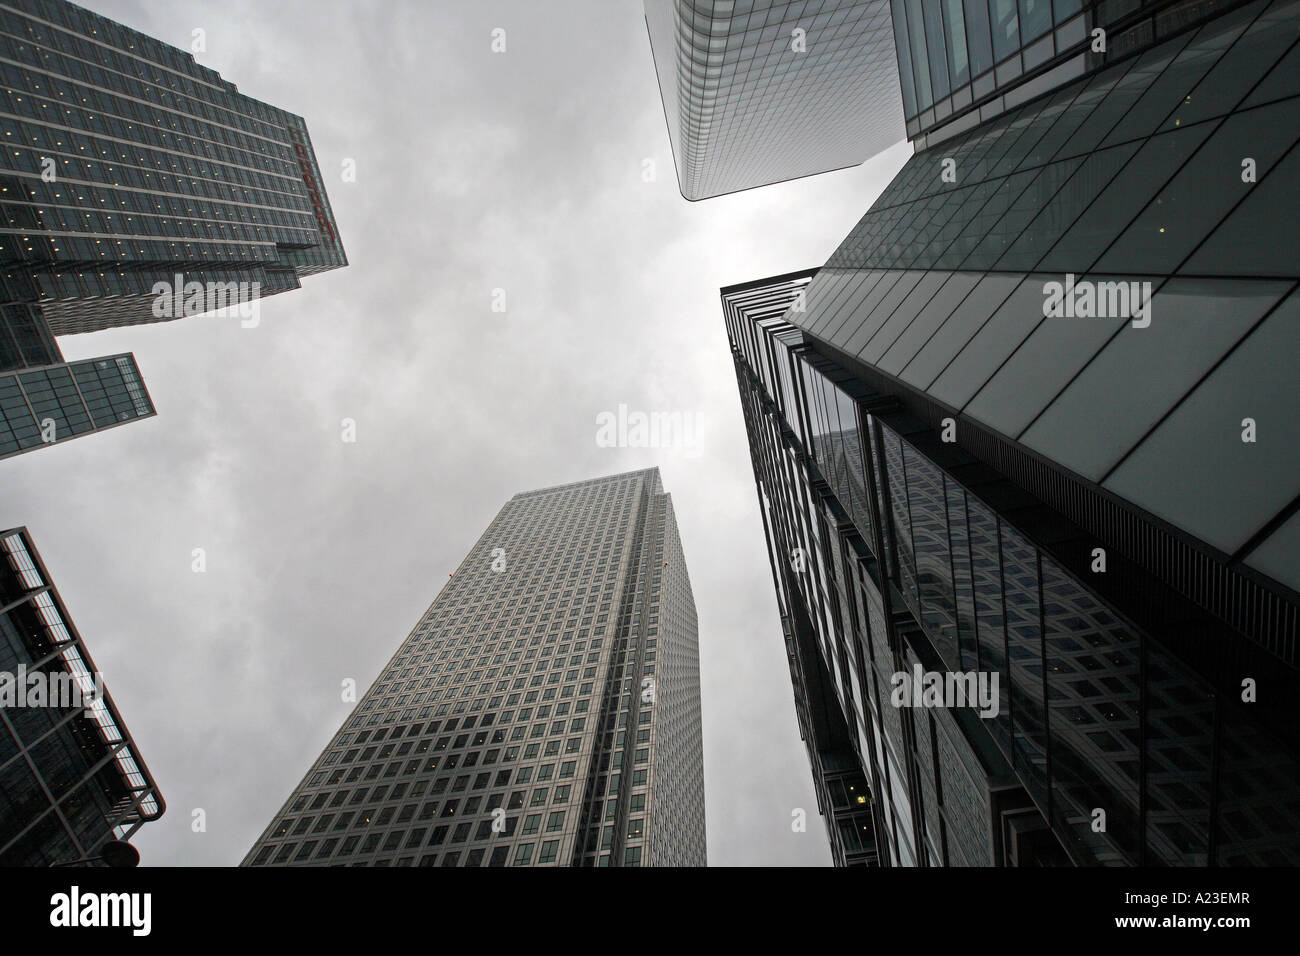 a stormy grey sky looms over large highrise office buildings in the buisness centre of the capital city London. - Stock Image